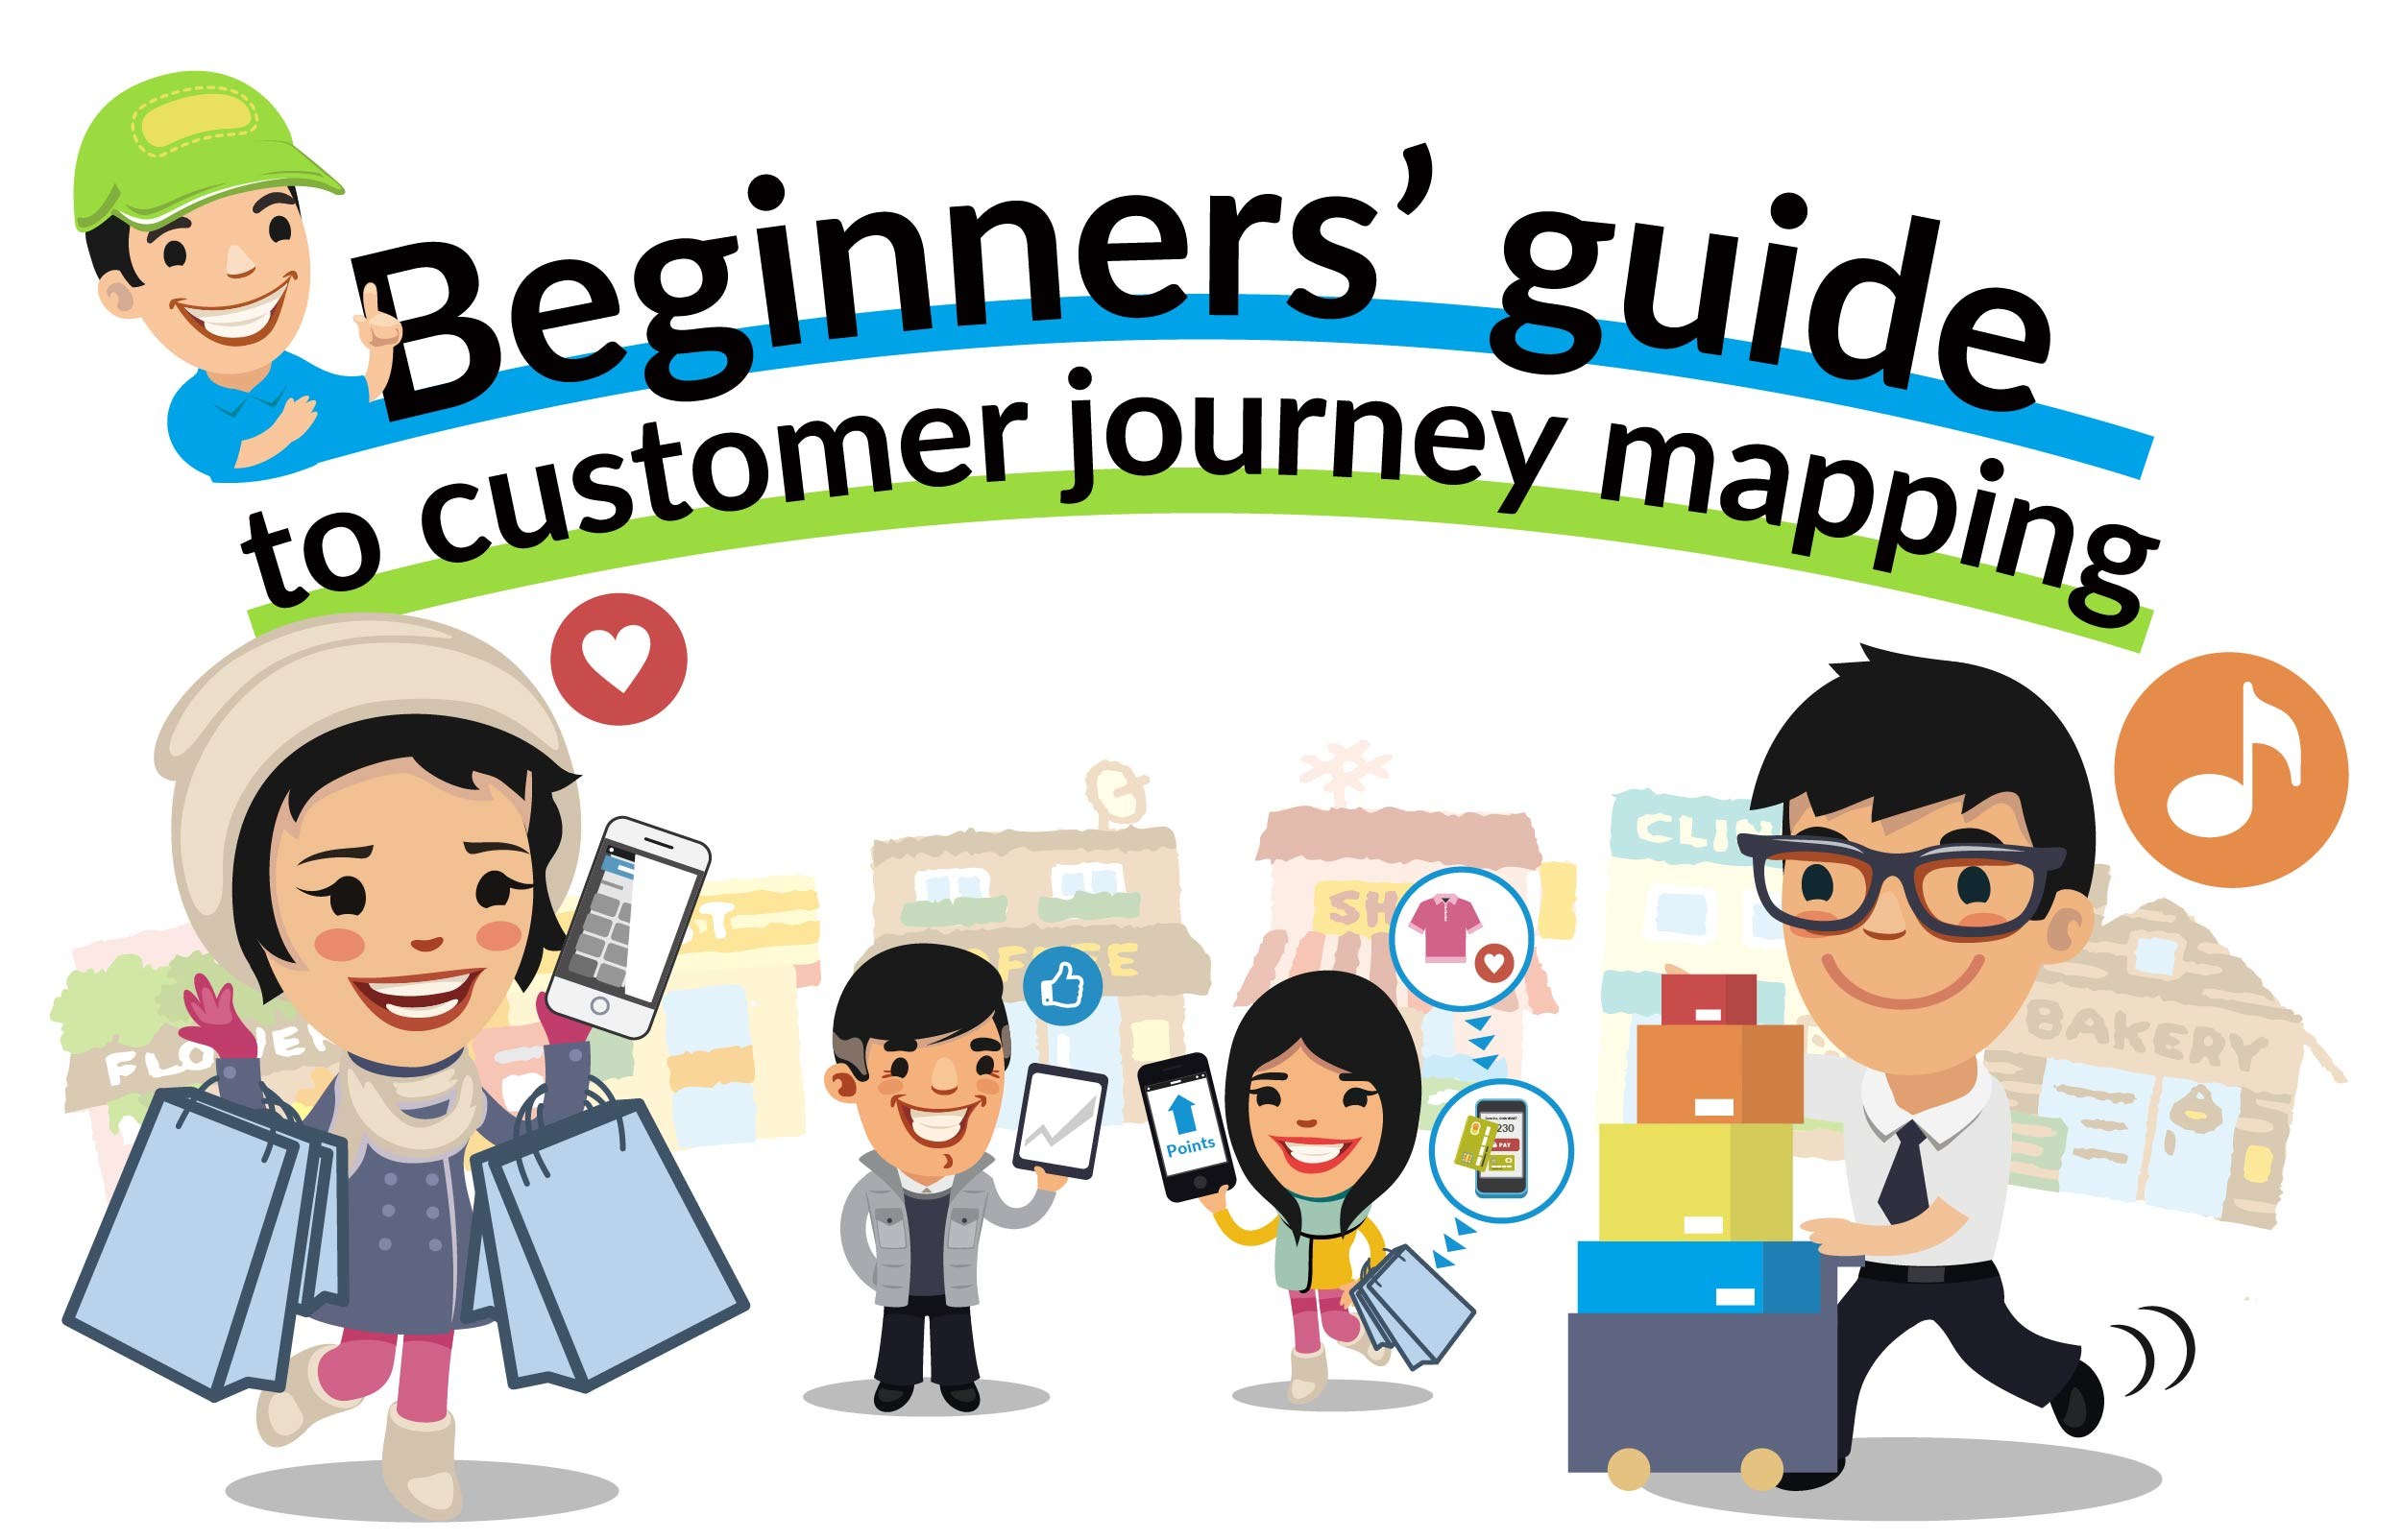 Beginners' Guide To Customer Journey Mapping